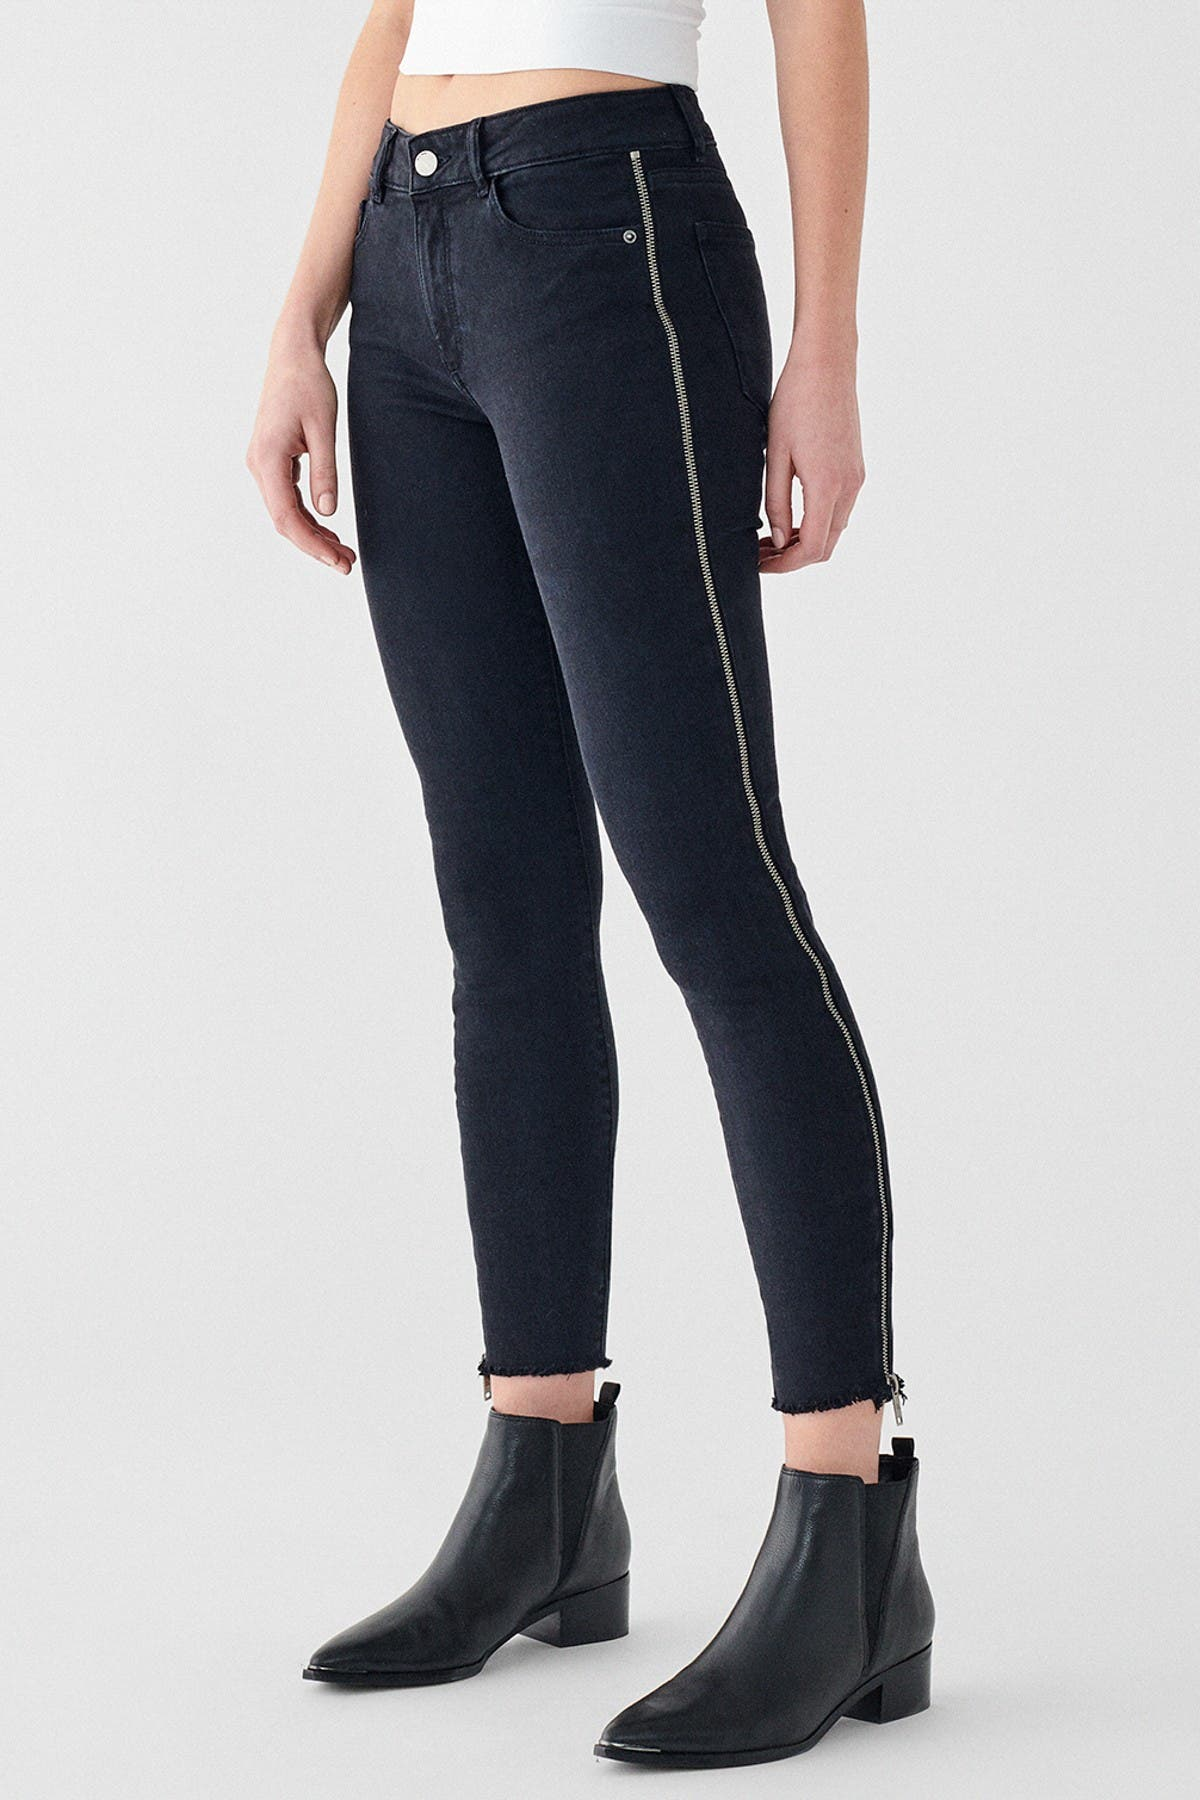 Image of DL1961 Florence Cropped Mid Rise Jeans